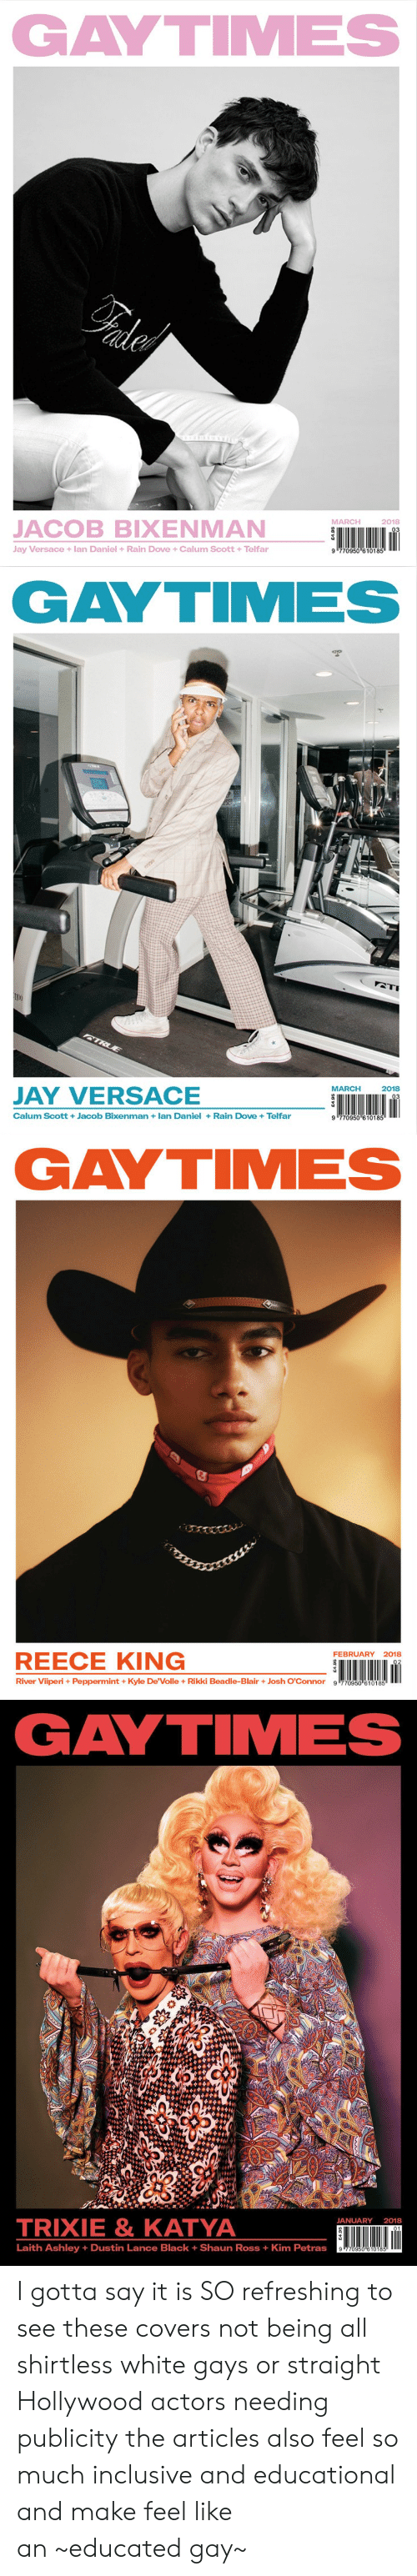 Reece: GAYTIMES  MARCH  2018  JACOB BIXENMAN  Jay Versace +lan Daniel +Rain Dove +Calum Scott +Telfar  9 770950 610185   GAYTIMES  MARCH2018  JAY VERSACE  Calum Scott +Jacob Bixenman lan Daniel+Rain Dove +Telfar  9 770950 610185   GAYTIMES  FEBRUARY 2018  REECE KING  River Viiperi+ Peppermint +Kyle De'Volle+ Rikki Beadle-BlairJosh O'Connor g 770950 610185   GAYTIMES  TRIXIE& KATYA  JANUARY 2018  01  Laith Ashley +Dustin Lance Black + Shaun Ross + Kim Petras I gotta say it is SO refreshing to see these covers not being all shirtless white gays or straight Hollywood actors needing publicitythe articles also feel so much inclusive and educational and make feel like an~educated gay~